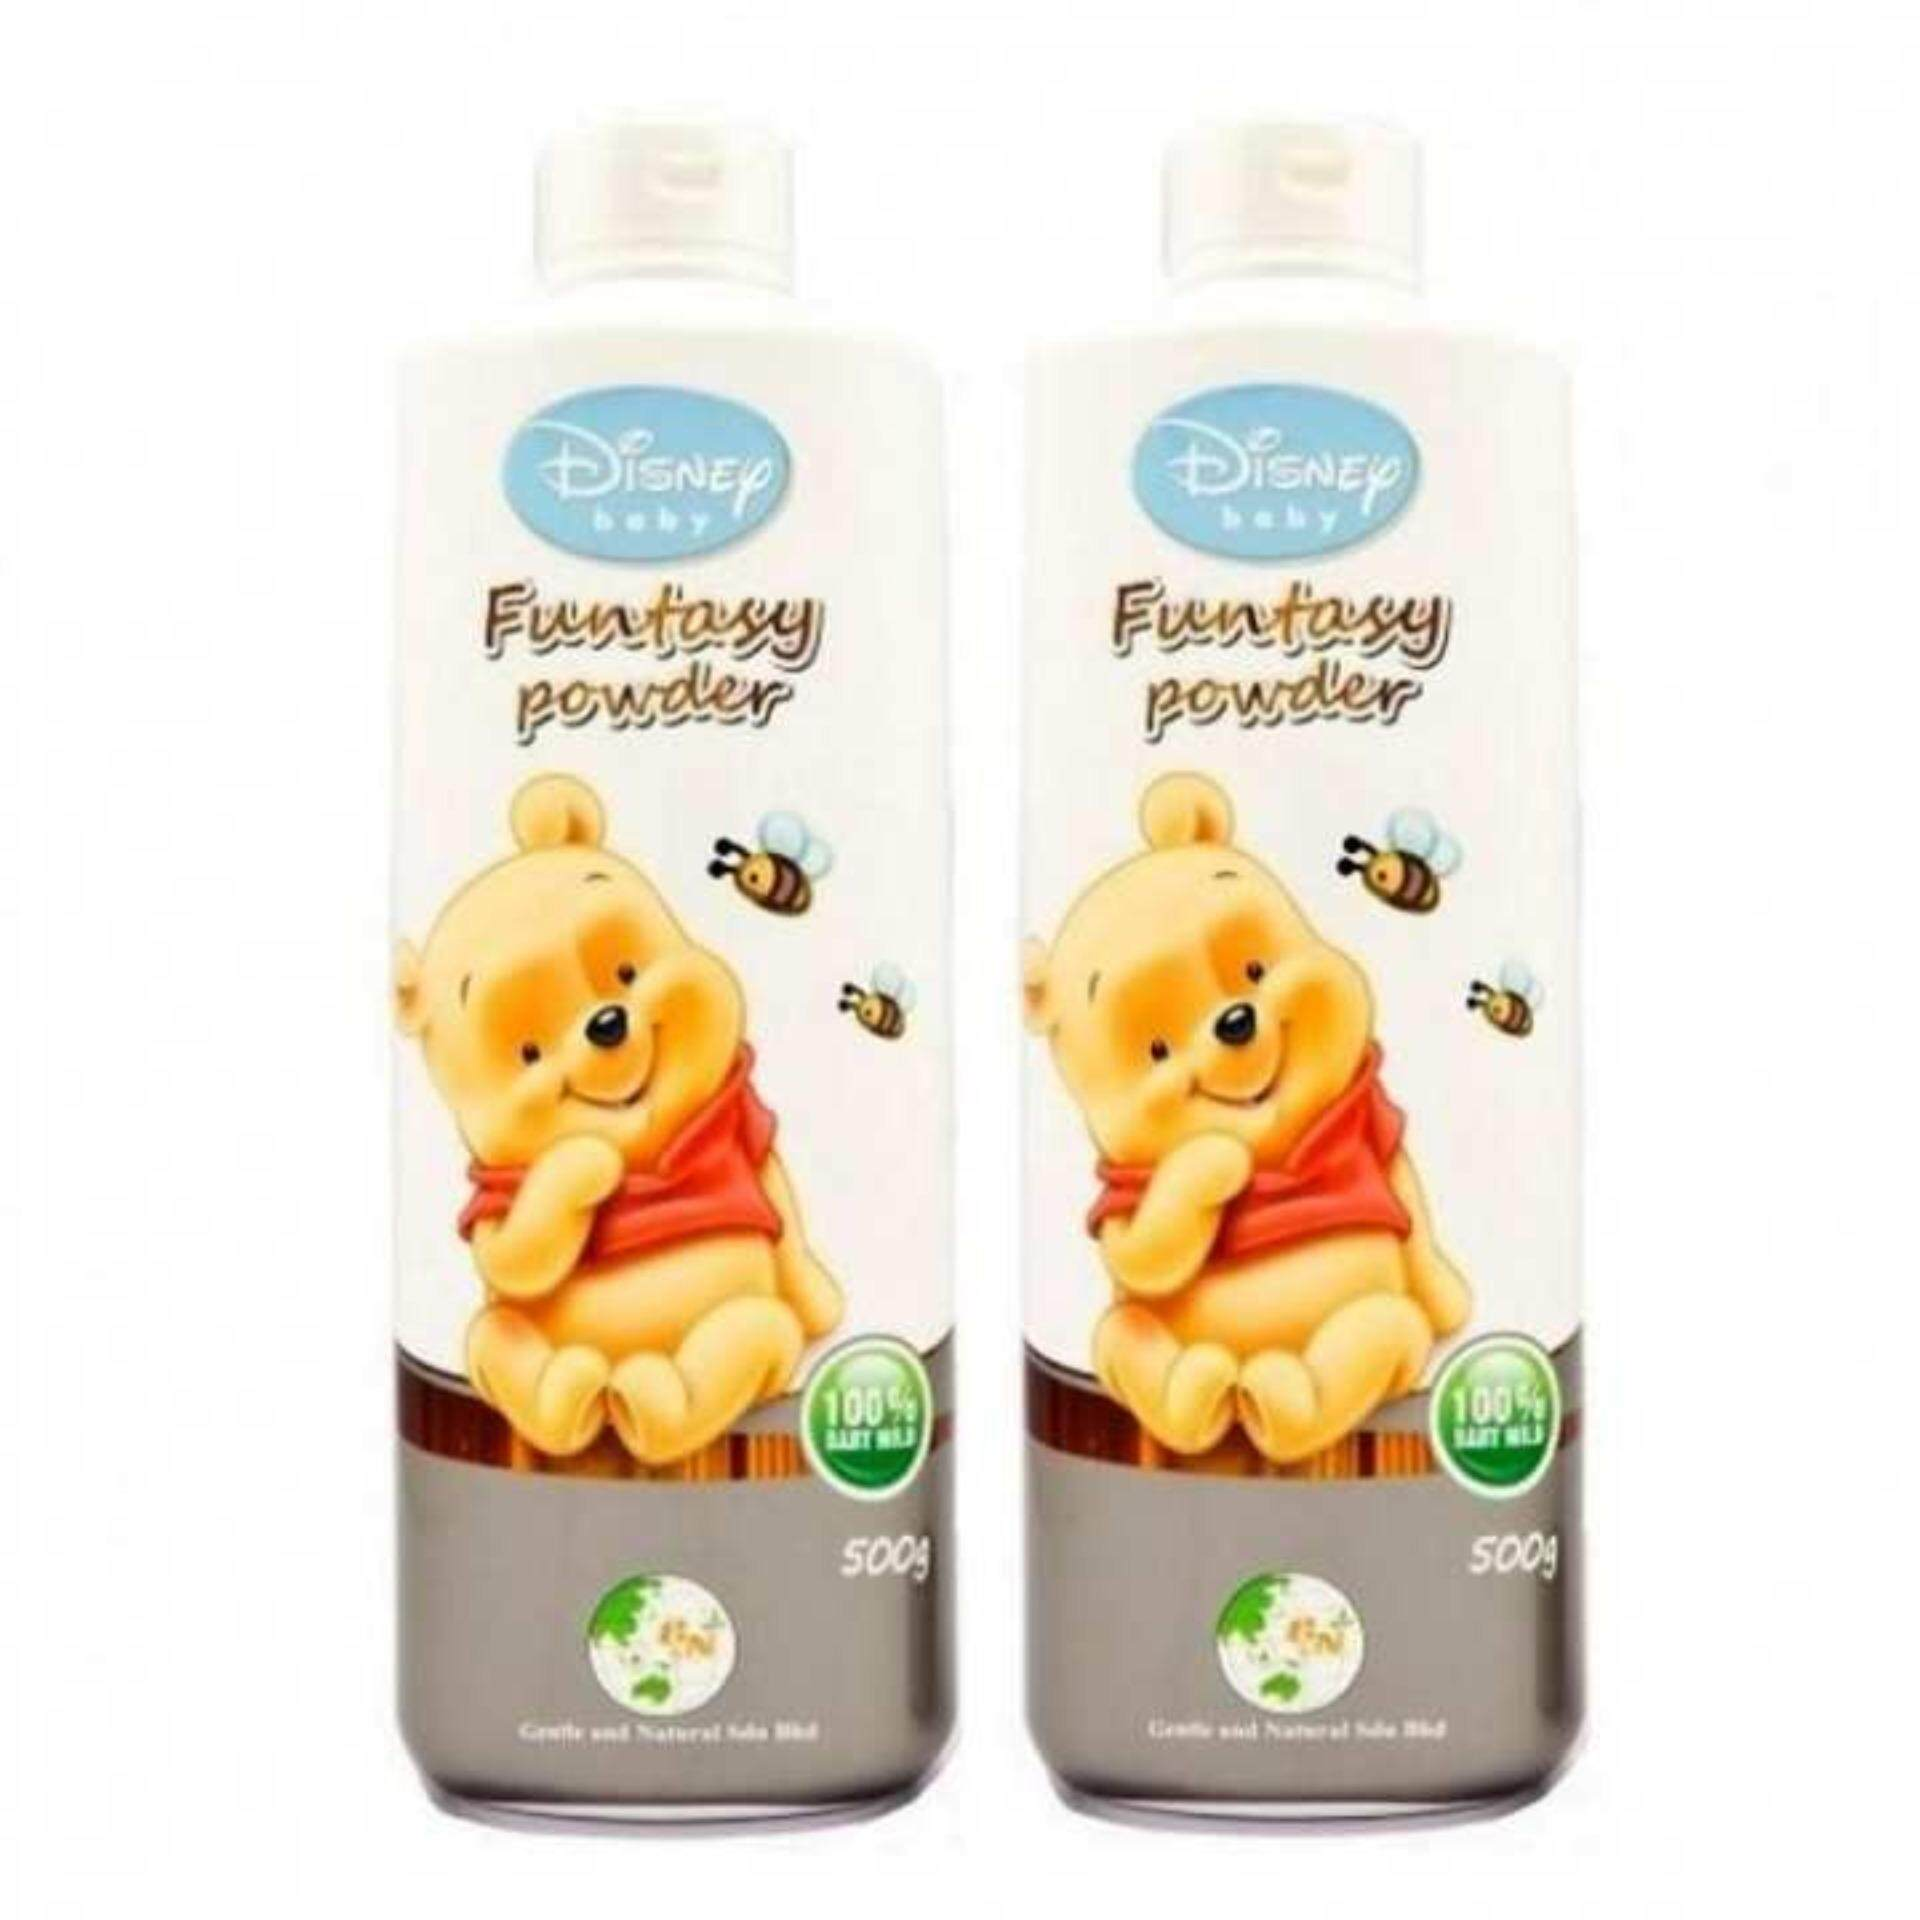 Disney Baby Twin Pack Funtasy Powder 500g - Winnie The Pooh By Komic.